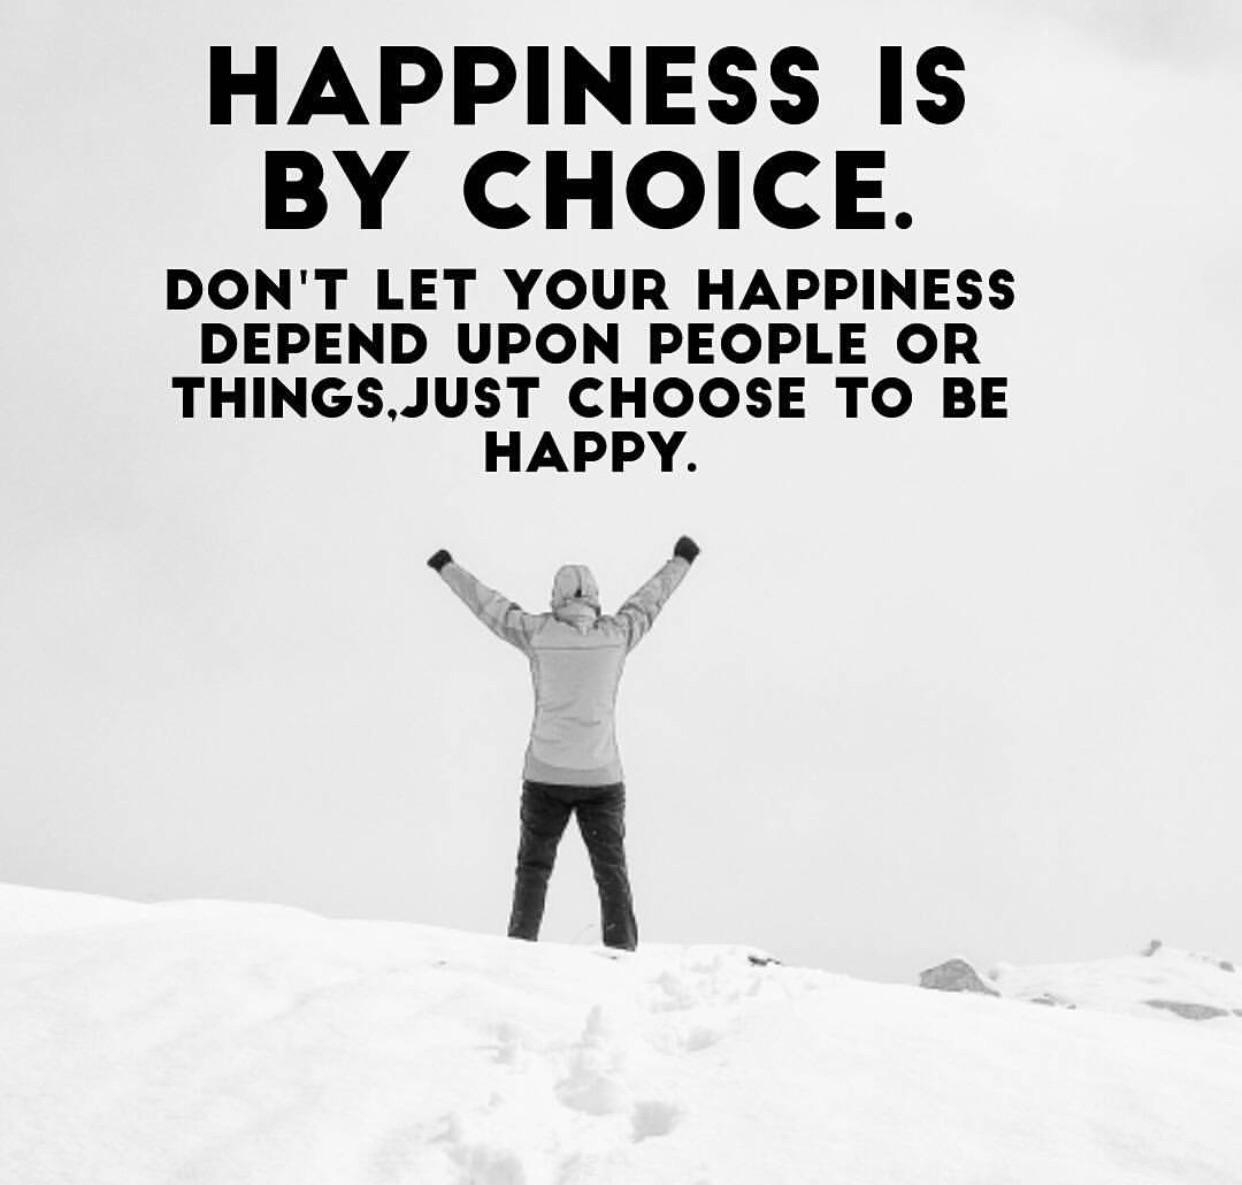 """HAPPINESS IS BY CHOICE. DON'T LET YOUR HAPPINESS DEPEND UPON PEOPLE OR THINGSJUST CHOOSE TO BE HAPPY. ¢ 0 .-'- I"""" vfl 1' I ~ ' i I https://inspirational.ly"""